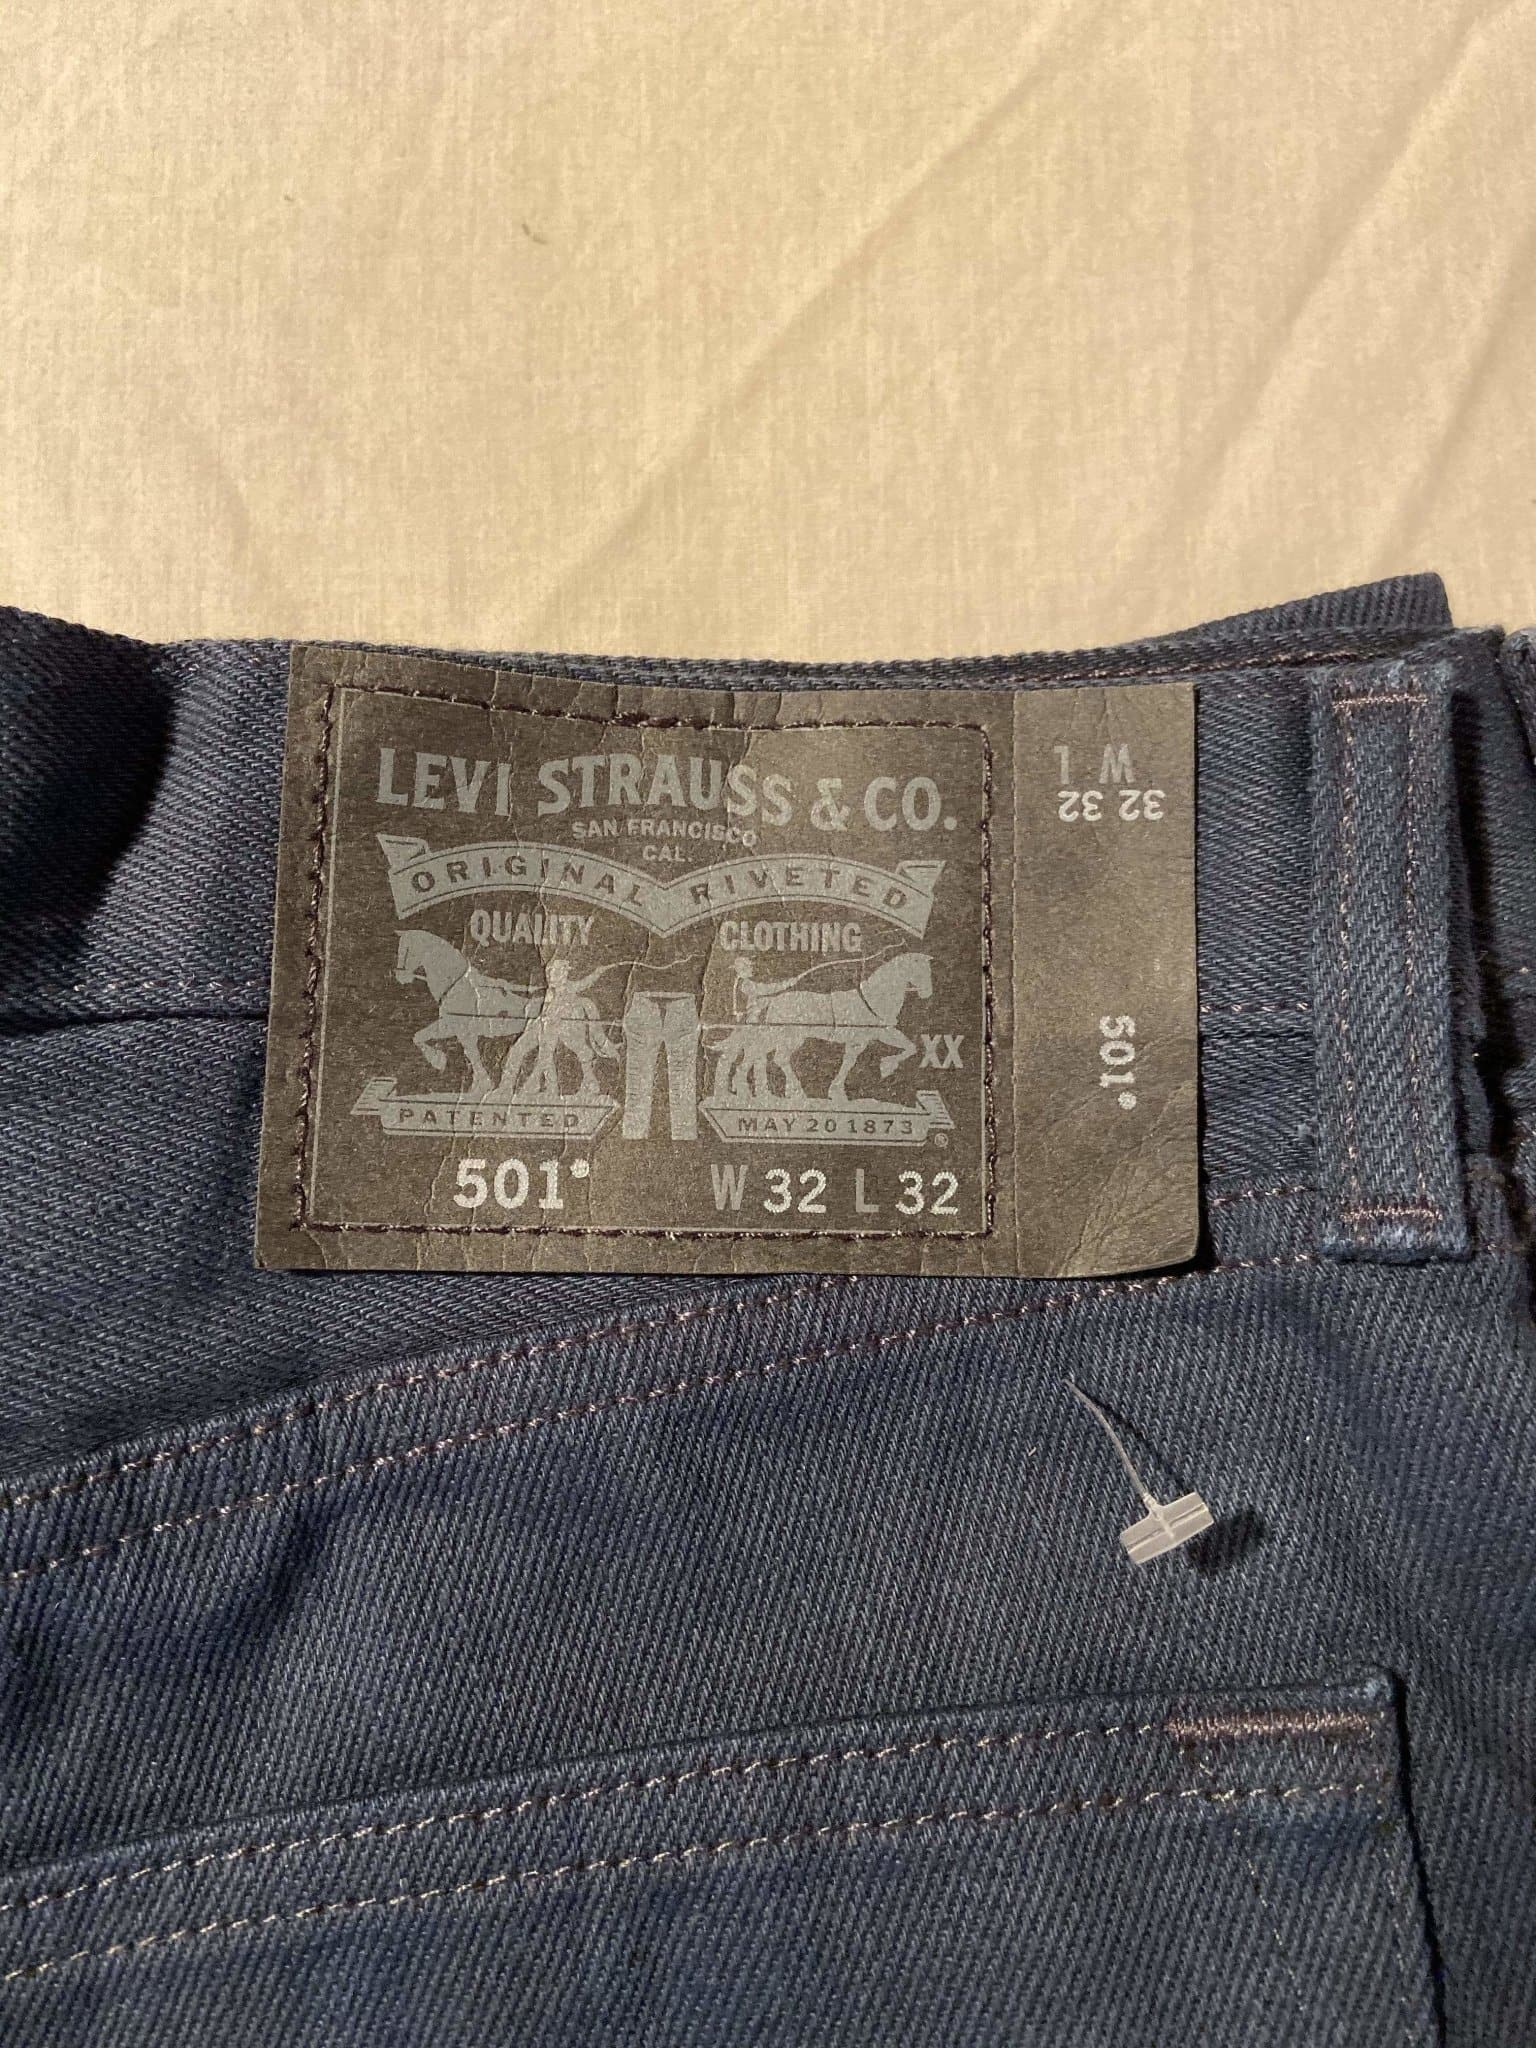 As New Without Tags Levi's Original 501 Regular Fit Jeans W32 L32 (DF5) - Discounted Deals UK